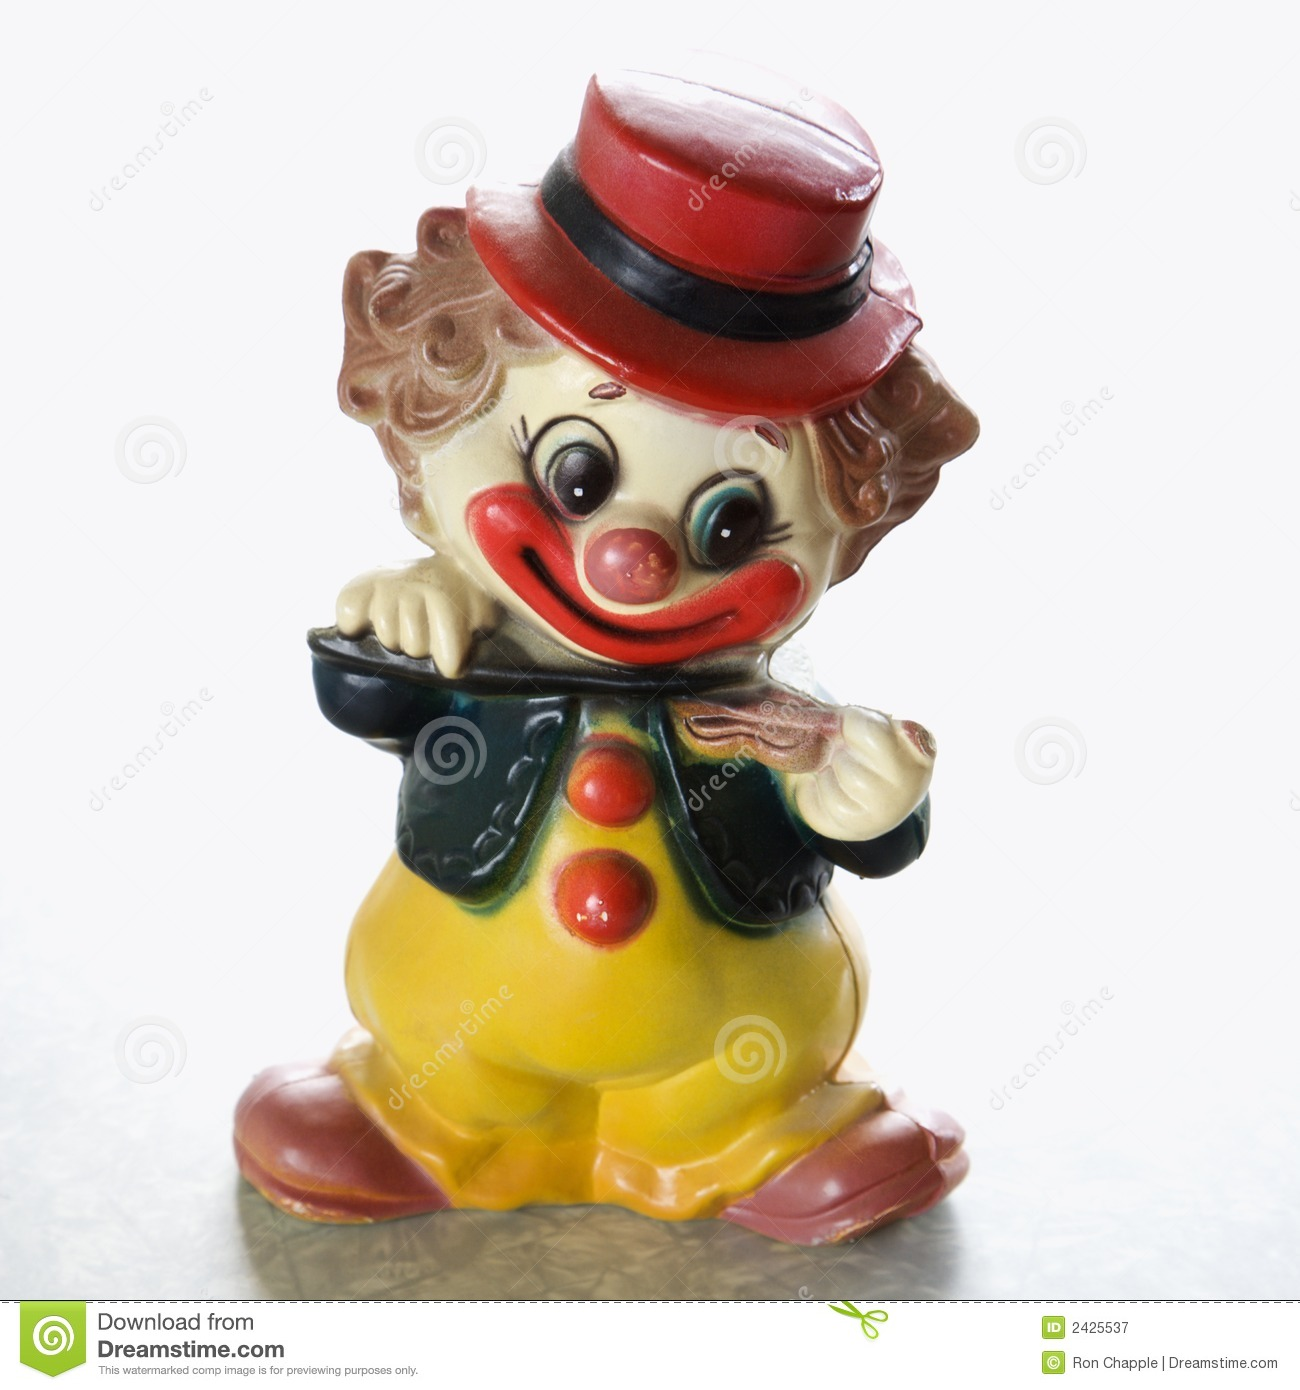 ... life of vintage colorful smiling clown figurine playing the violin